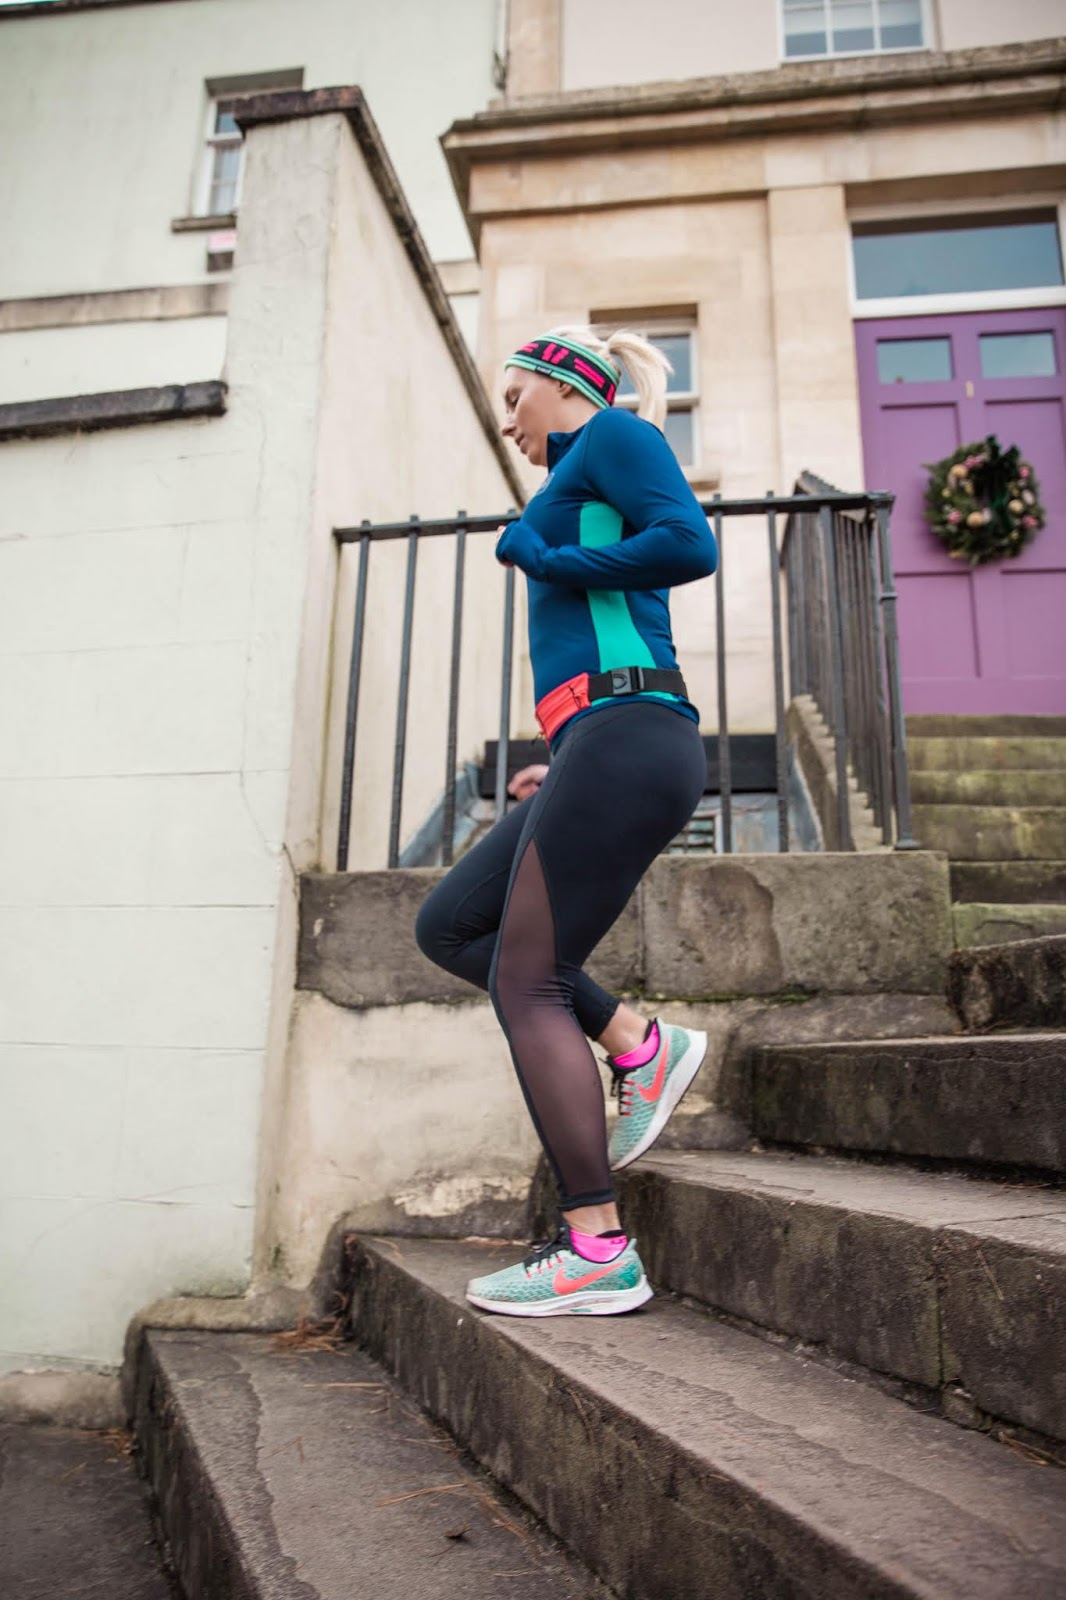 Rachel Emily Running Down some steps in black, pink and blue running gear - Rachel Emily Blog